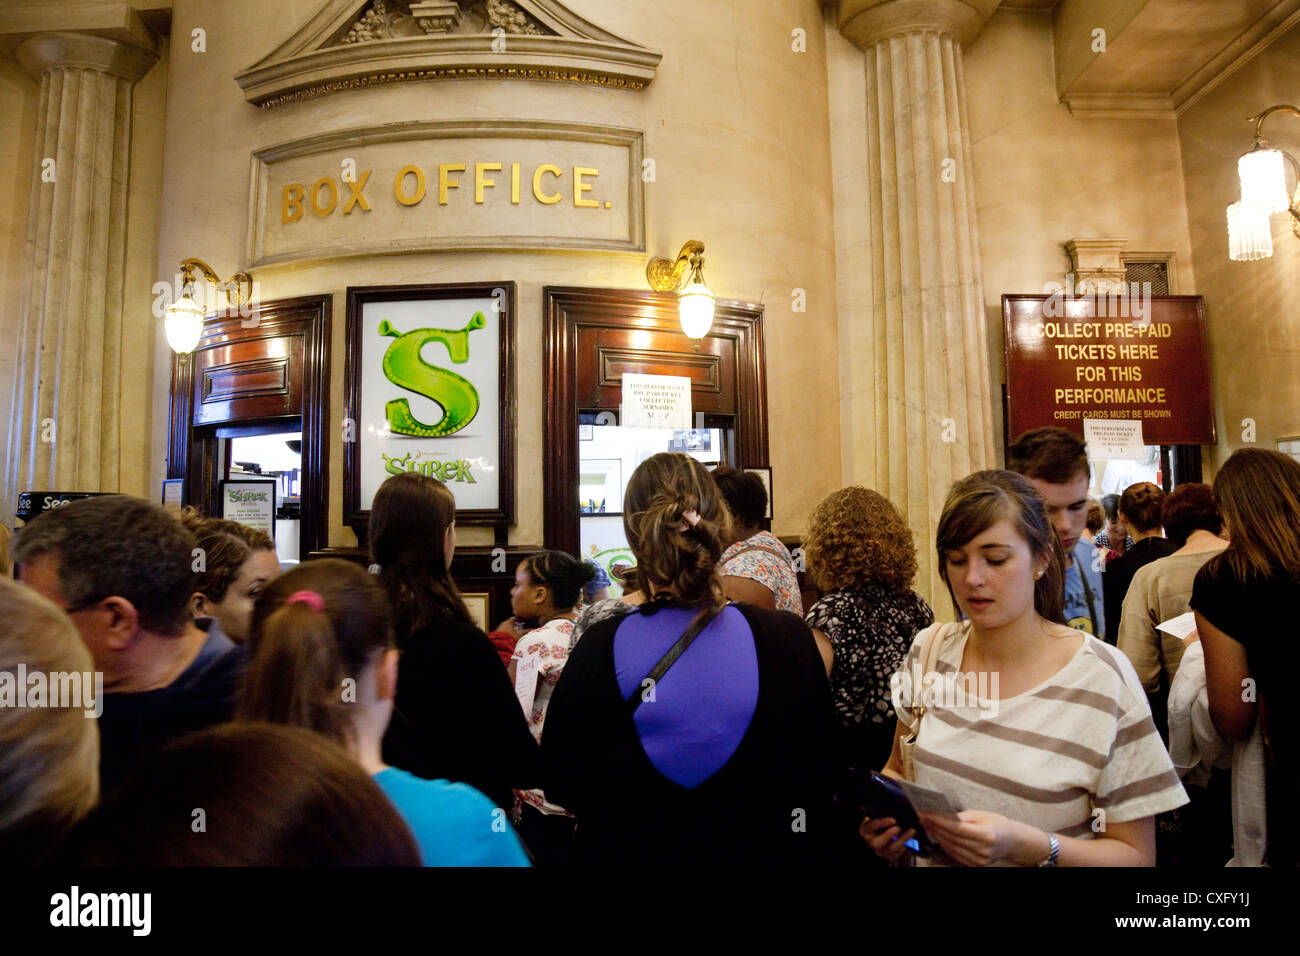 People coming to see Shrek the Musical in the Box Office of the Theatre Royal Drury Lane, West End London UK - Stock Image